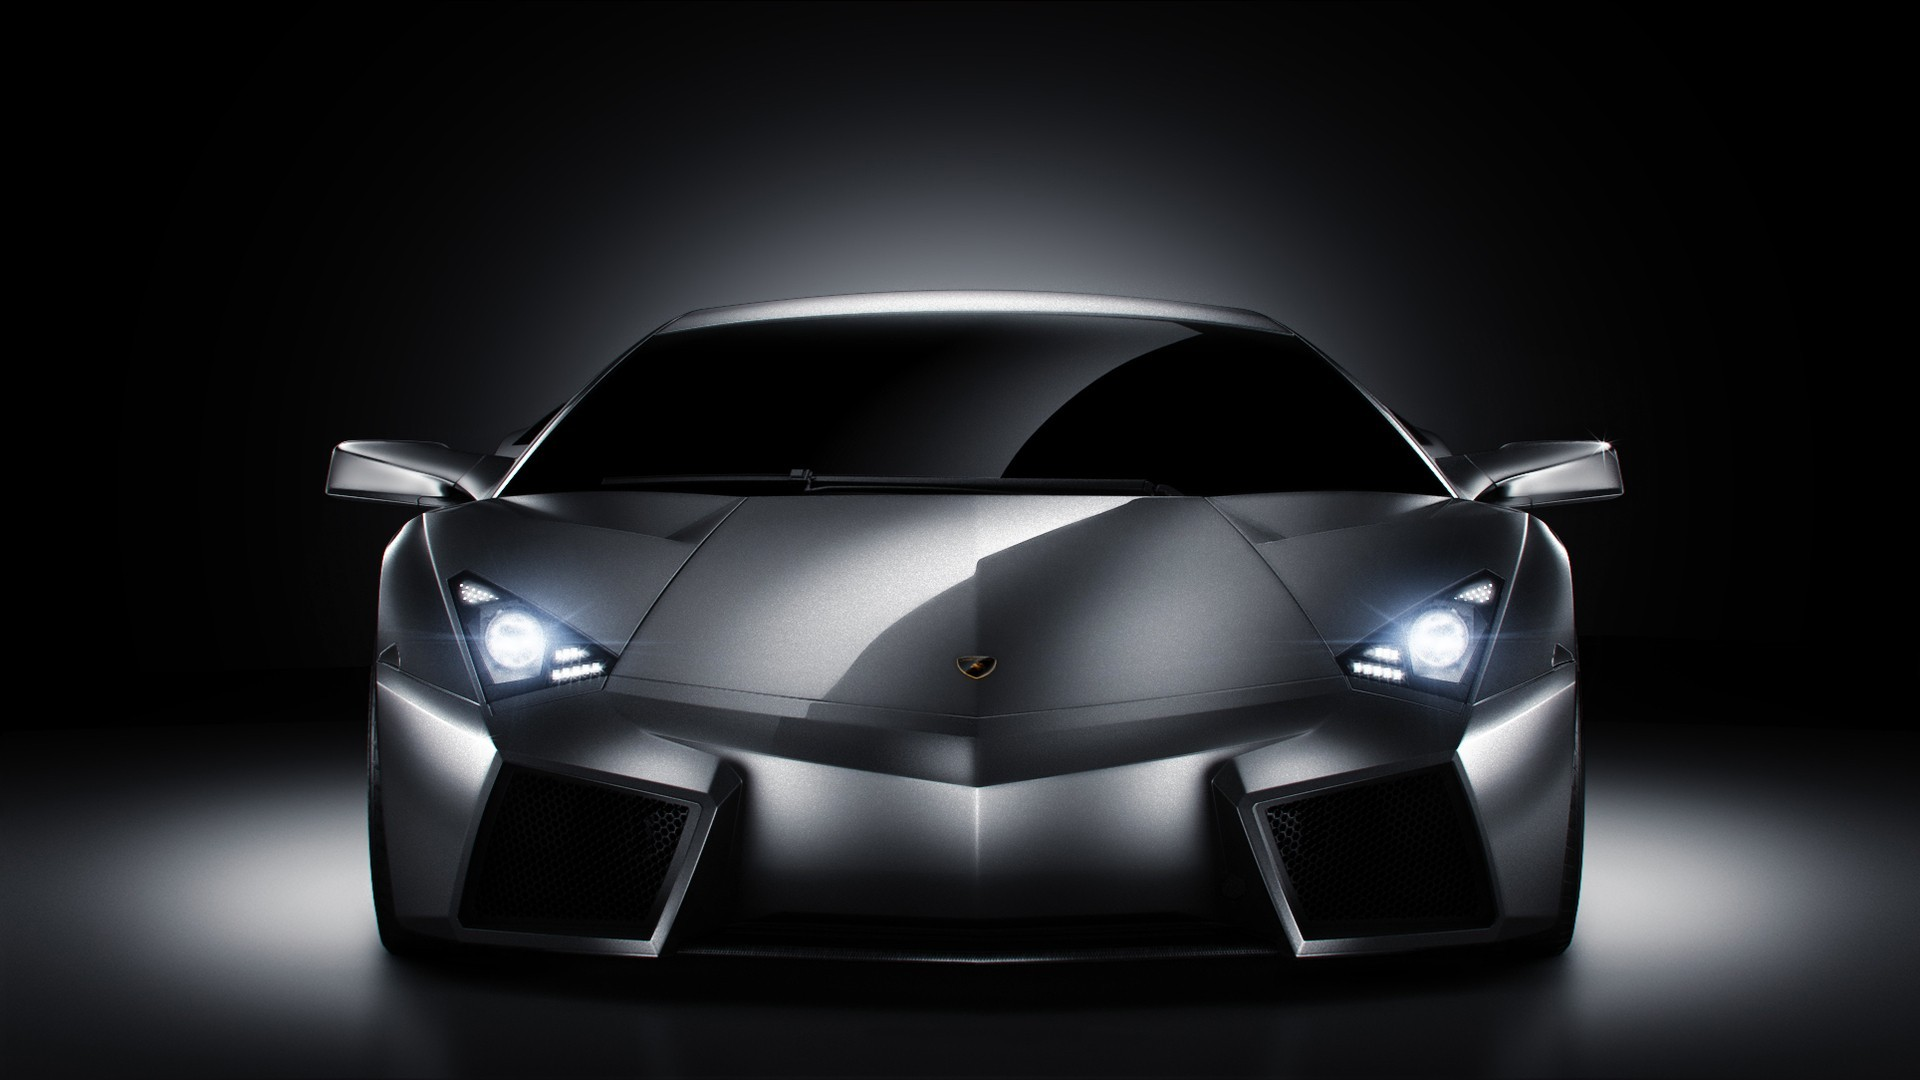 Lamborghini Reventon Hd Wallpaper 4975 Hd Wallpapers in Cars 1920x1080